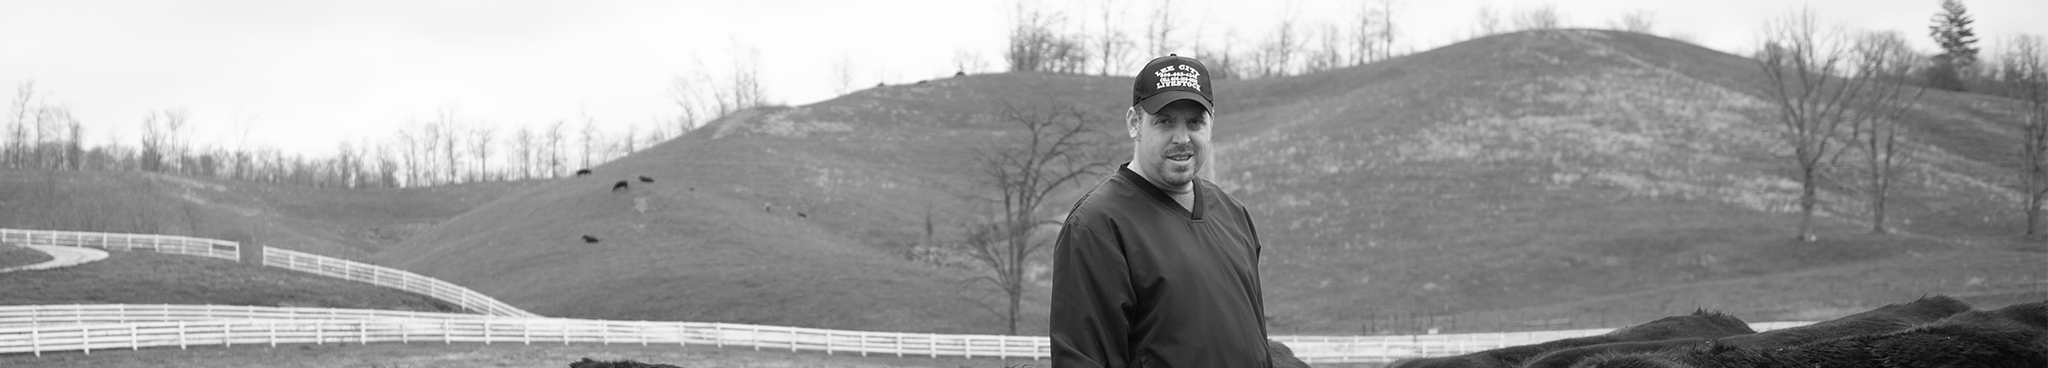 JONATHAN OF JSW FARMS IN LIBERTY (OR HAZEL GREEN), KENTUCKY. TRUSTED SUPPLIER OF FRESH RANCH-RAISED BEEF.